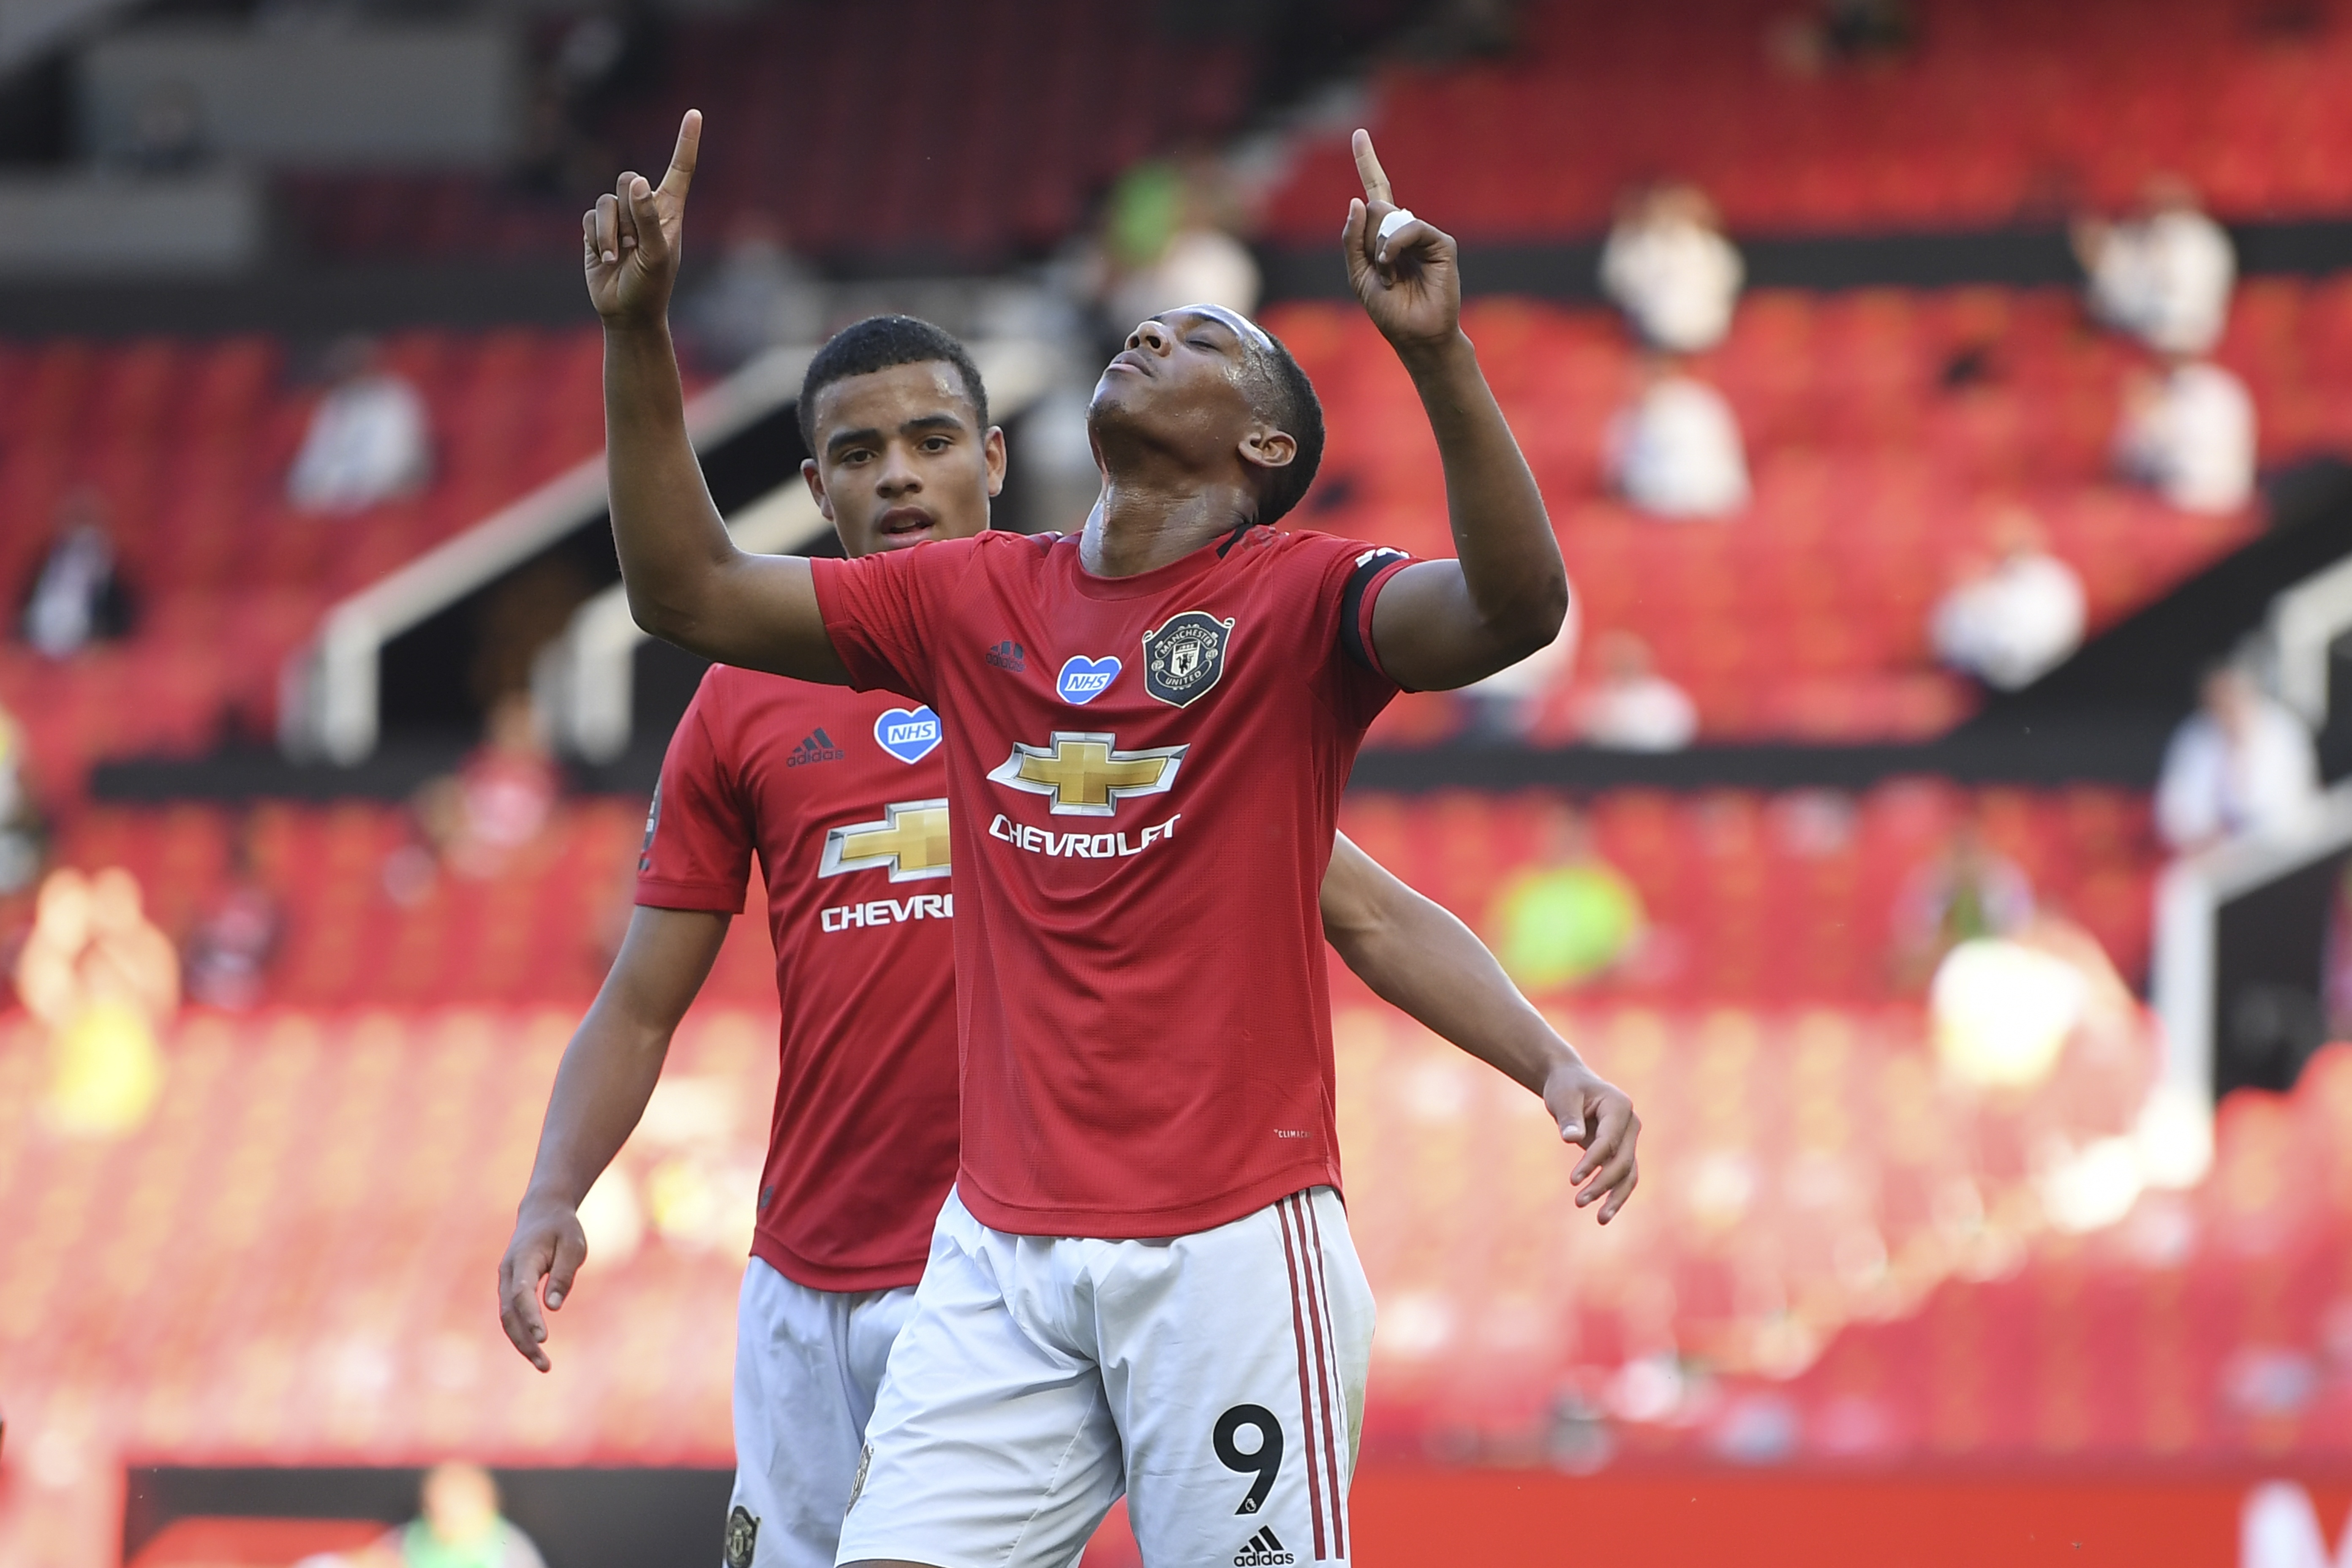 watch live football online free manchester united vs manchester city